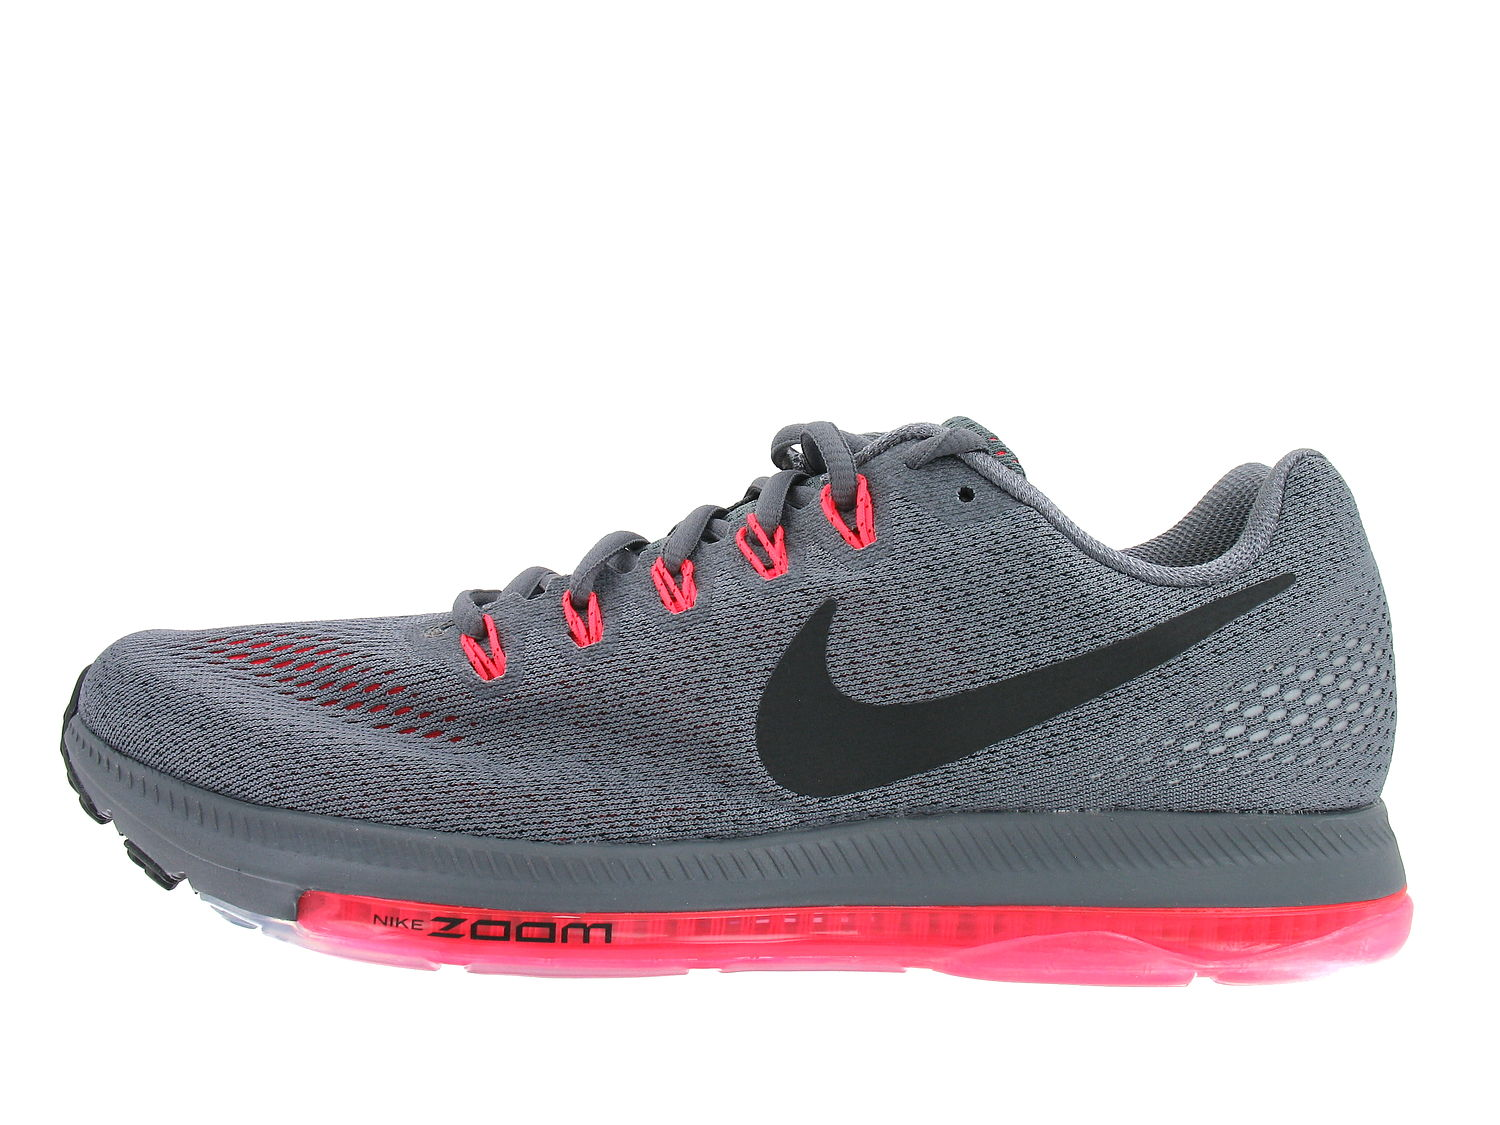 d5a66d2b0db8 Details about Nike Zoom All Out Low Men s Athletic Sneakers (11.5